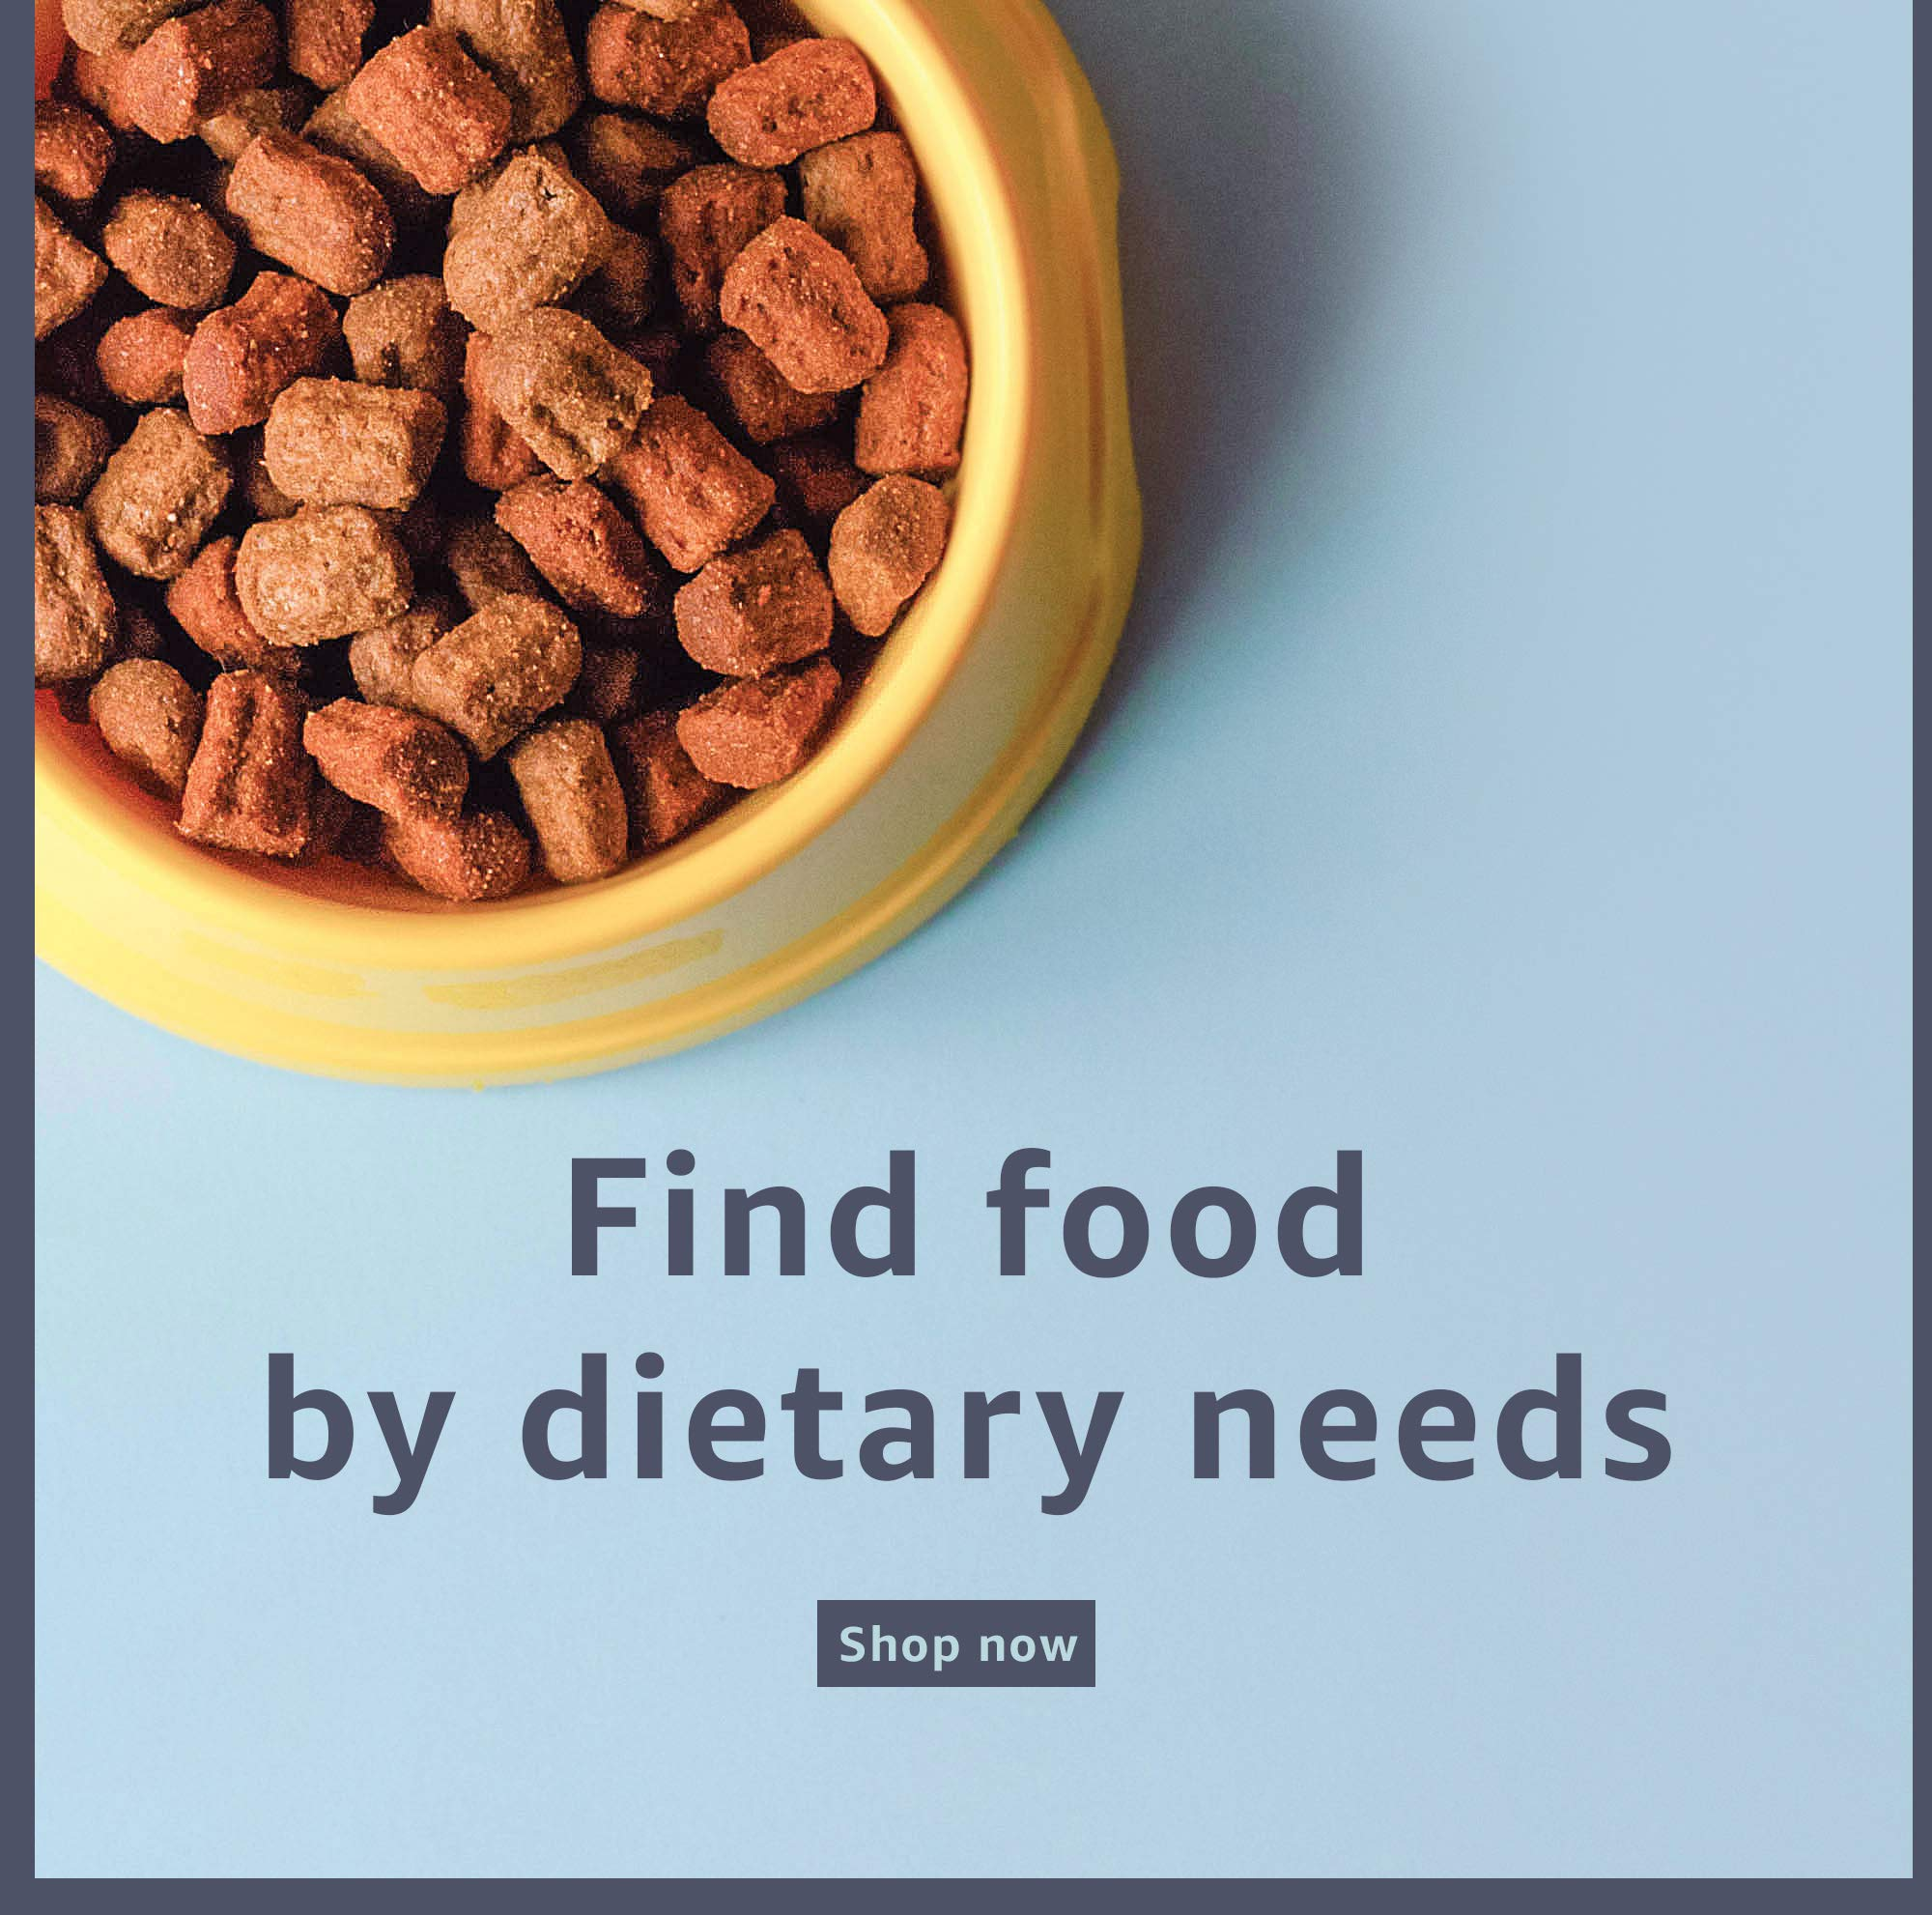 Find food by dietary needs